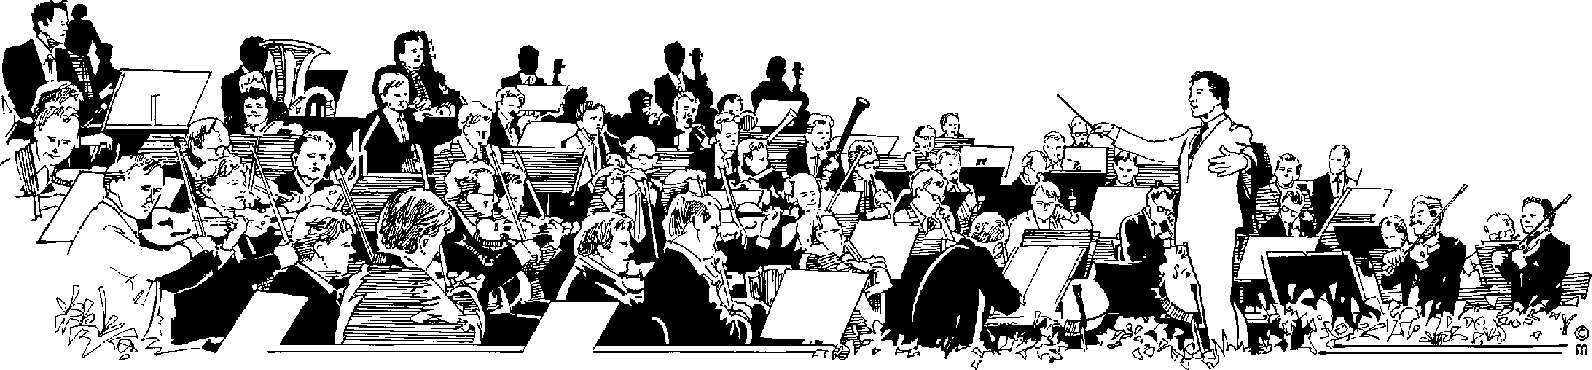 Symphony Orchestra Clipart.